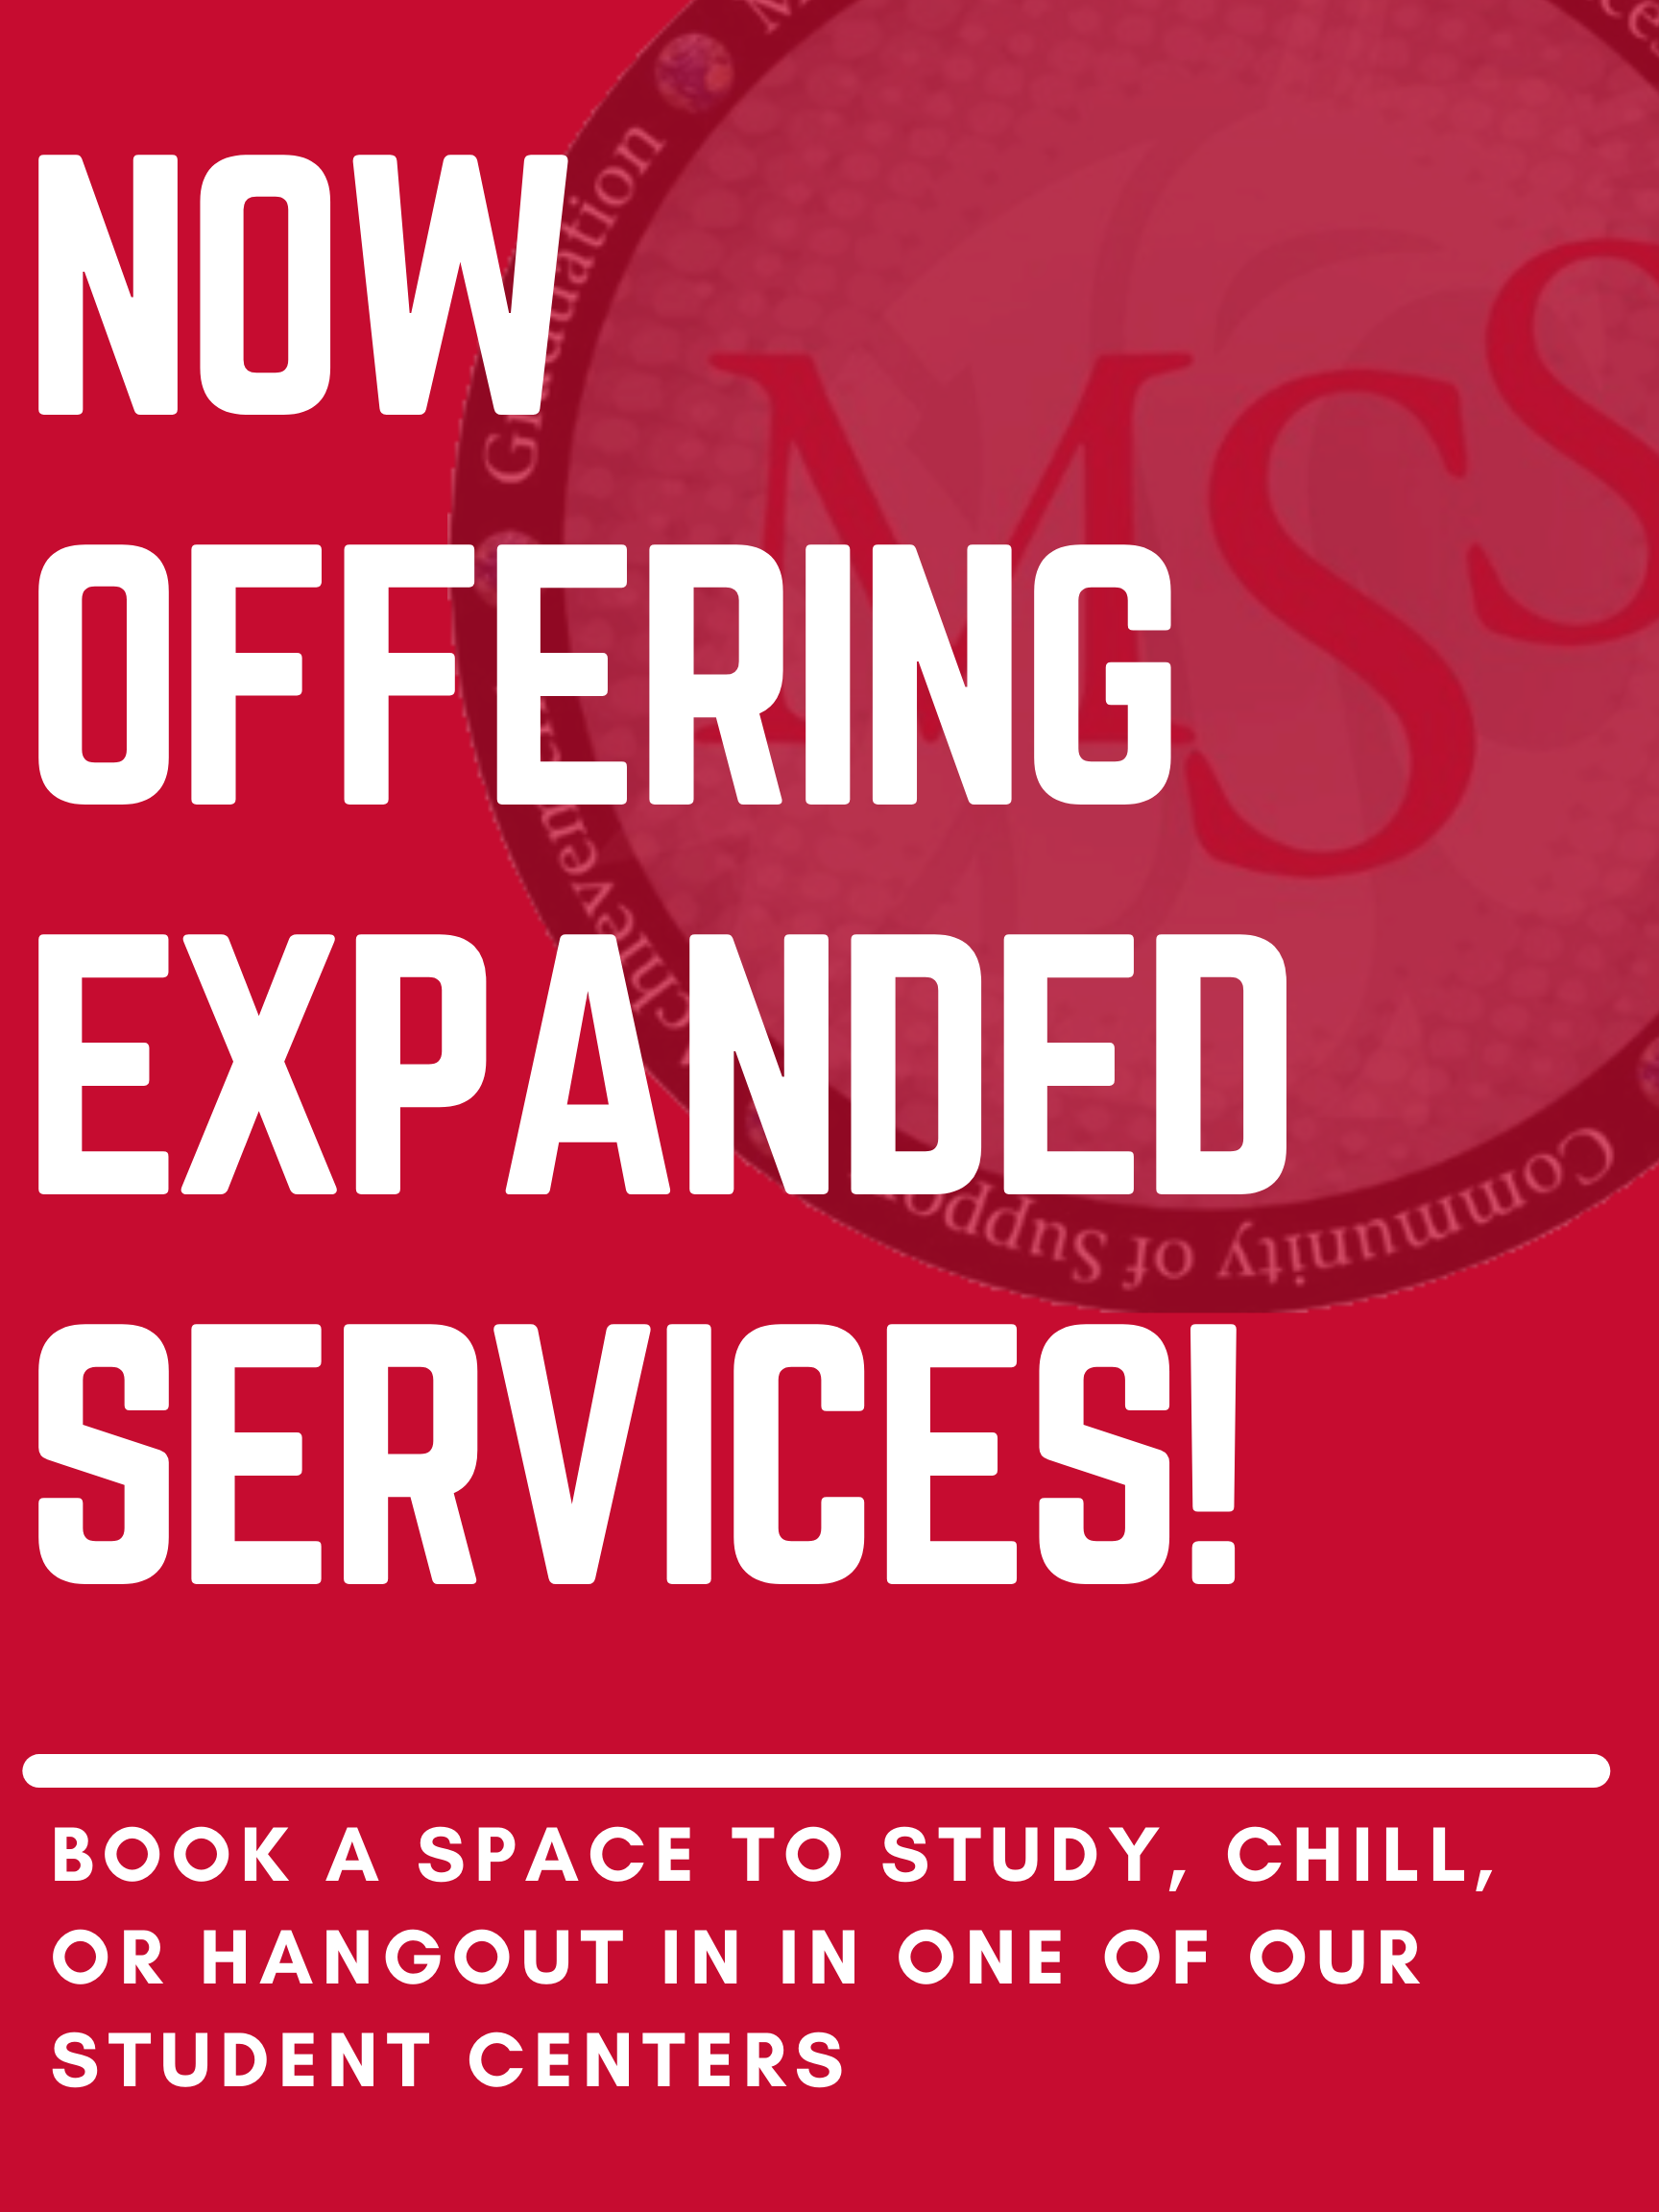 Now offering expanded services, book your space today